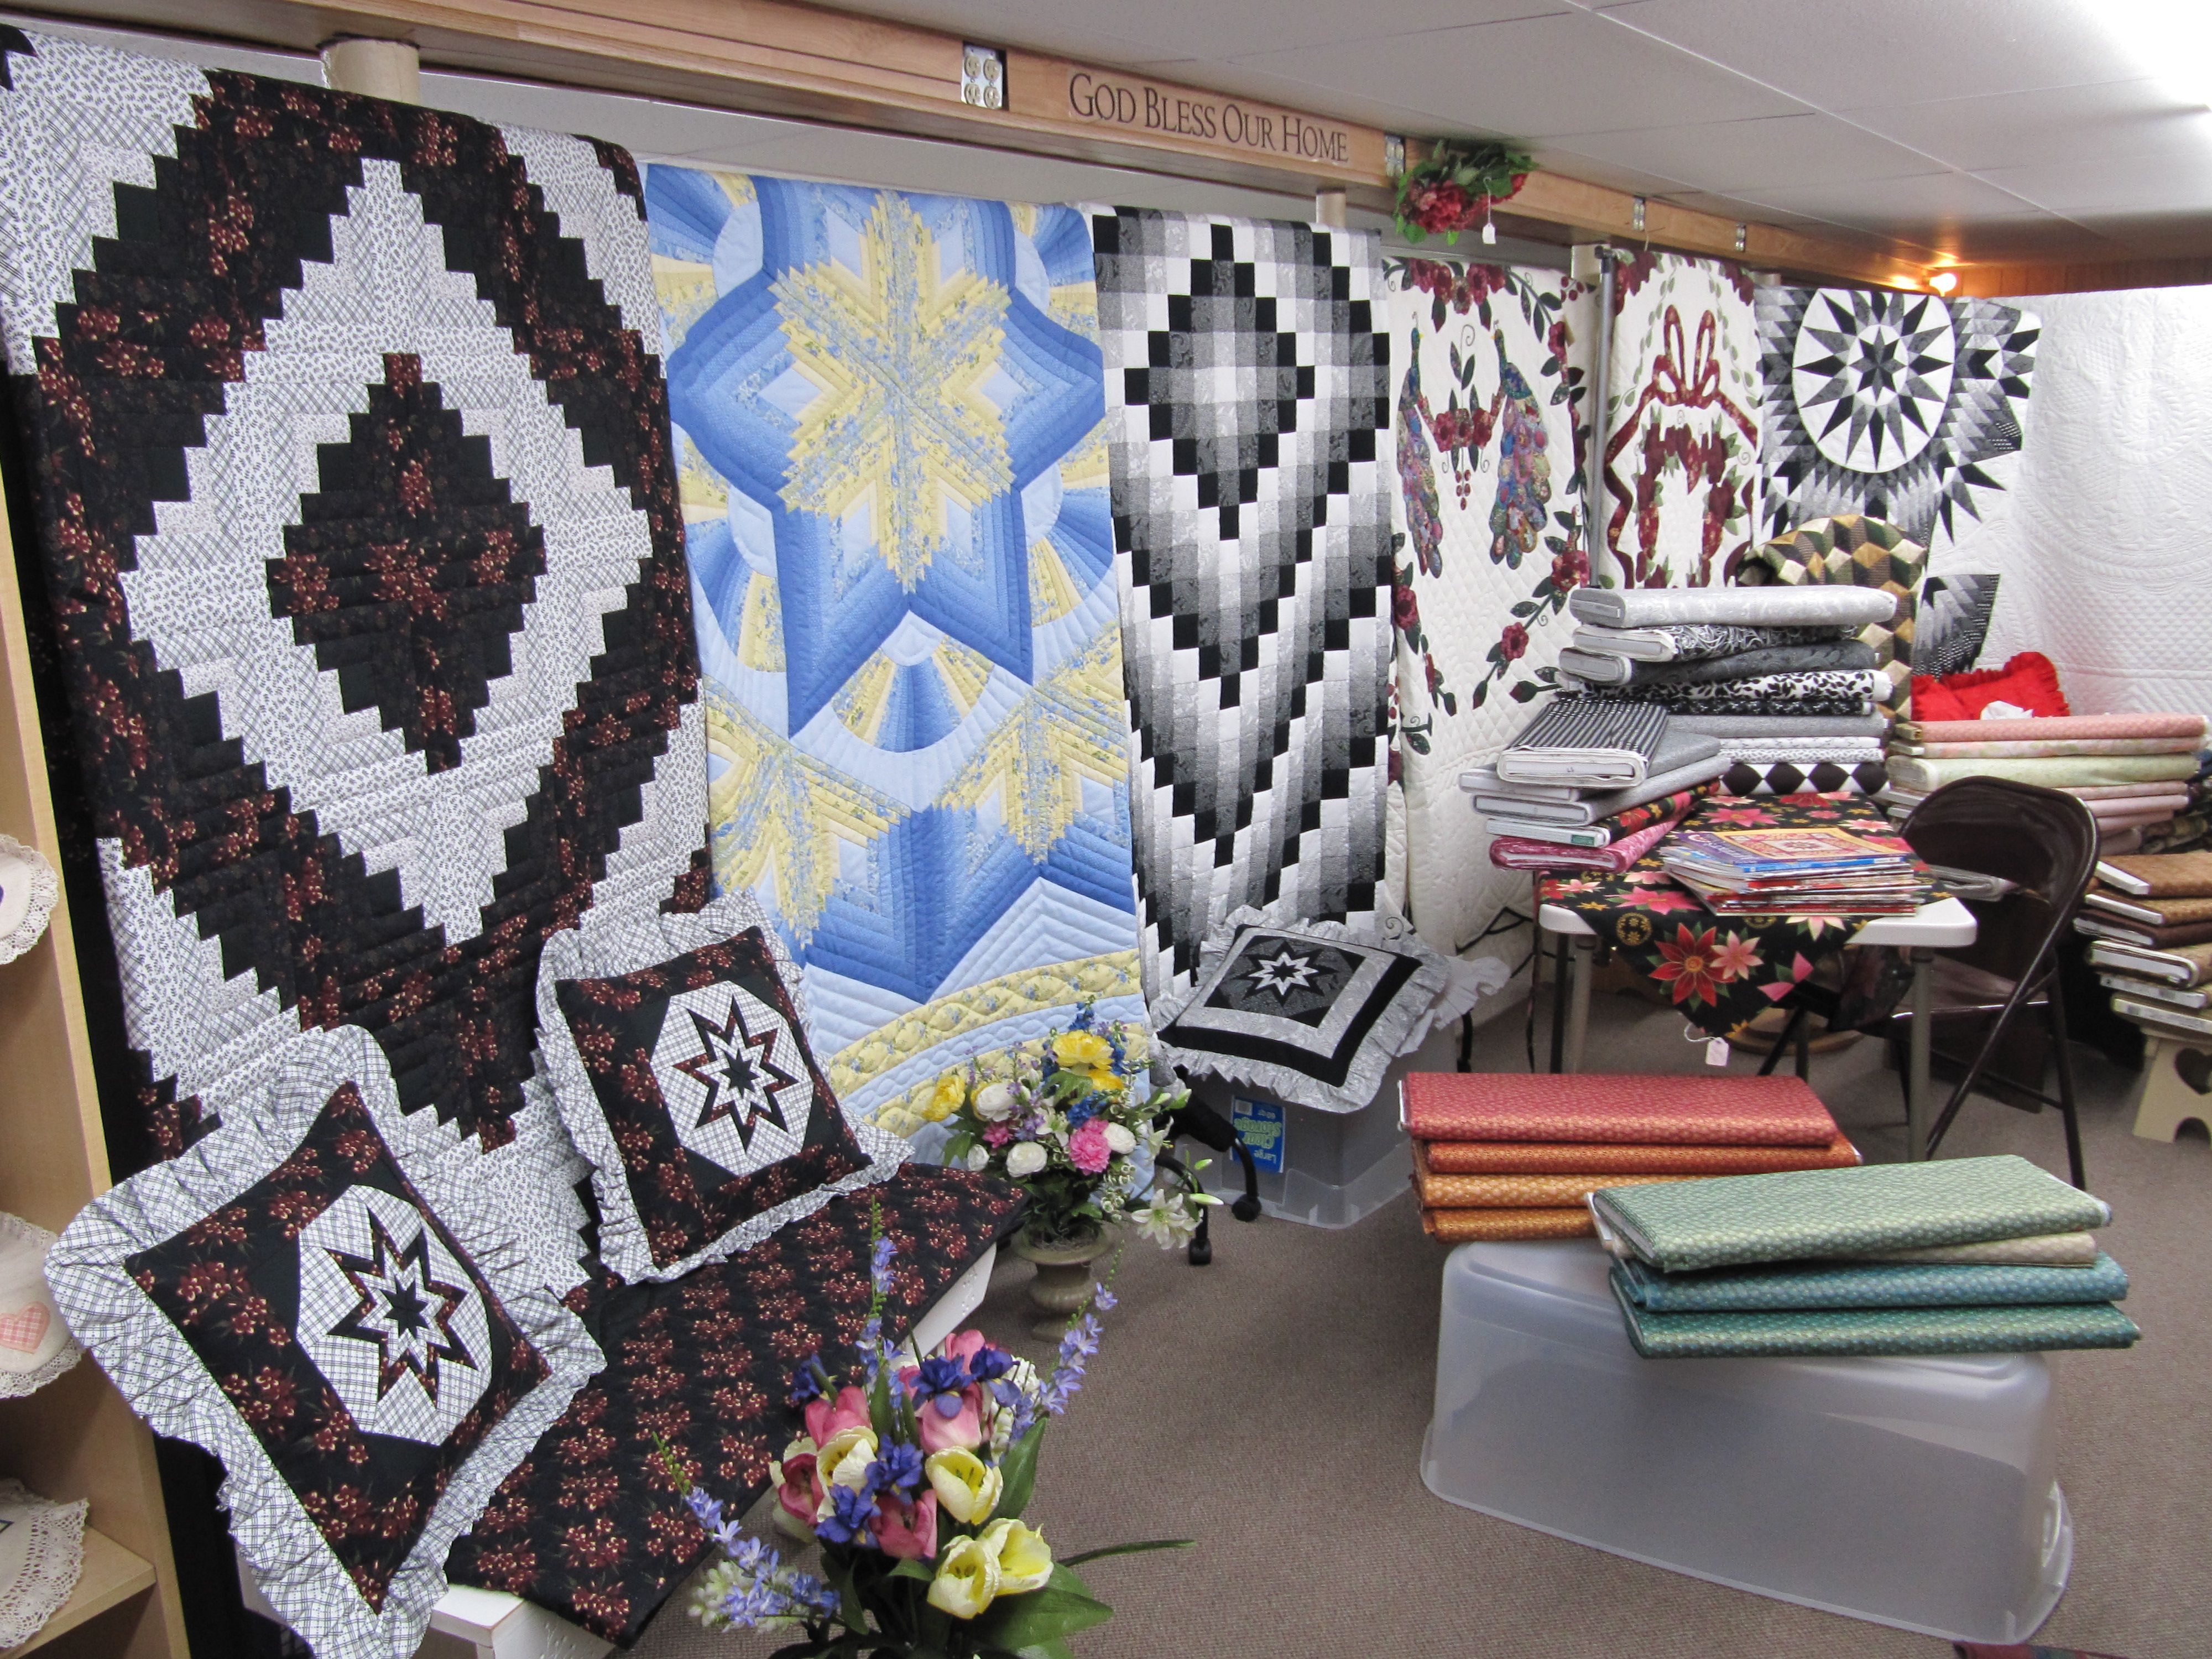 the amish quilts in the american society Comparing amish and north american society - comparing amish and north american society we can compare amish society the art of quilting glows with a.